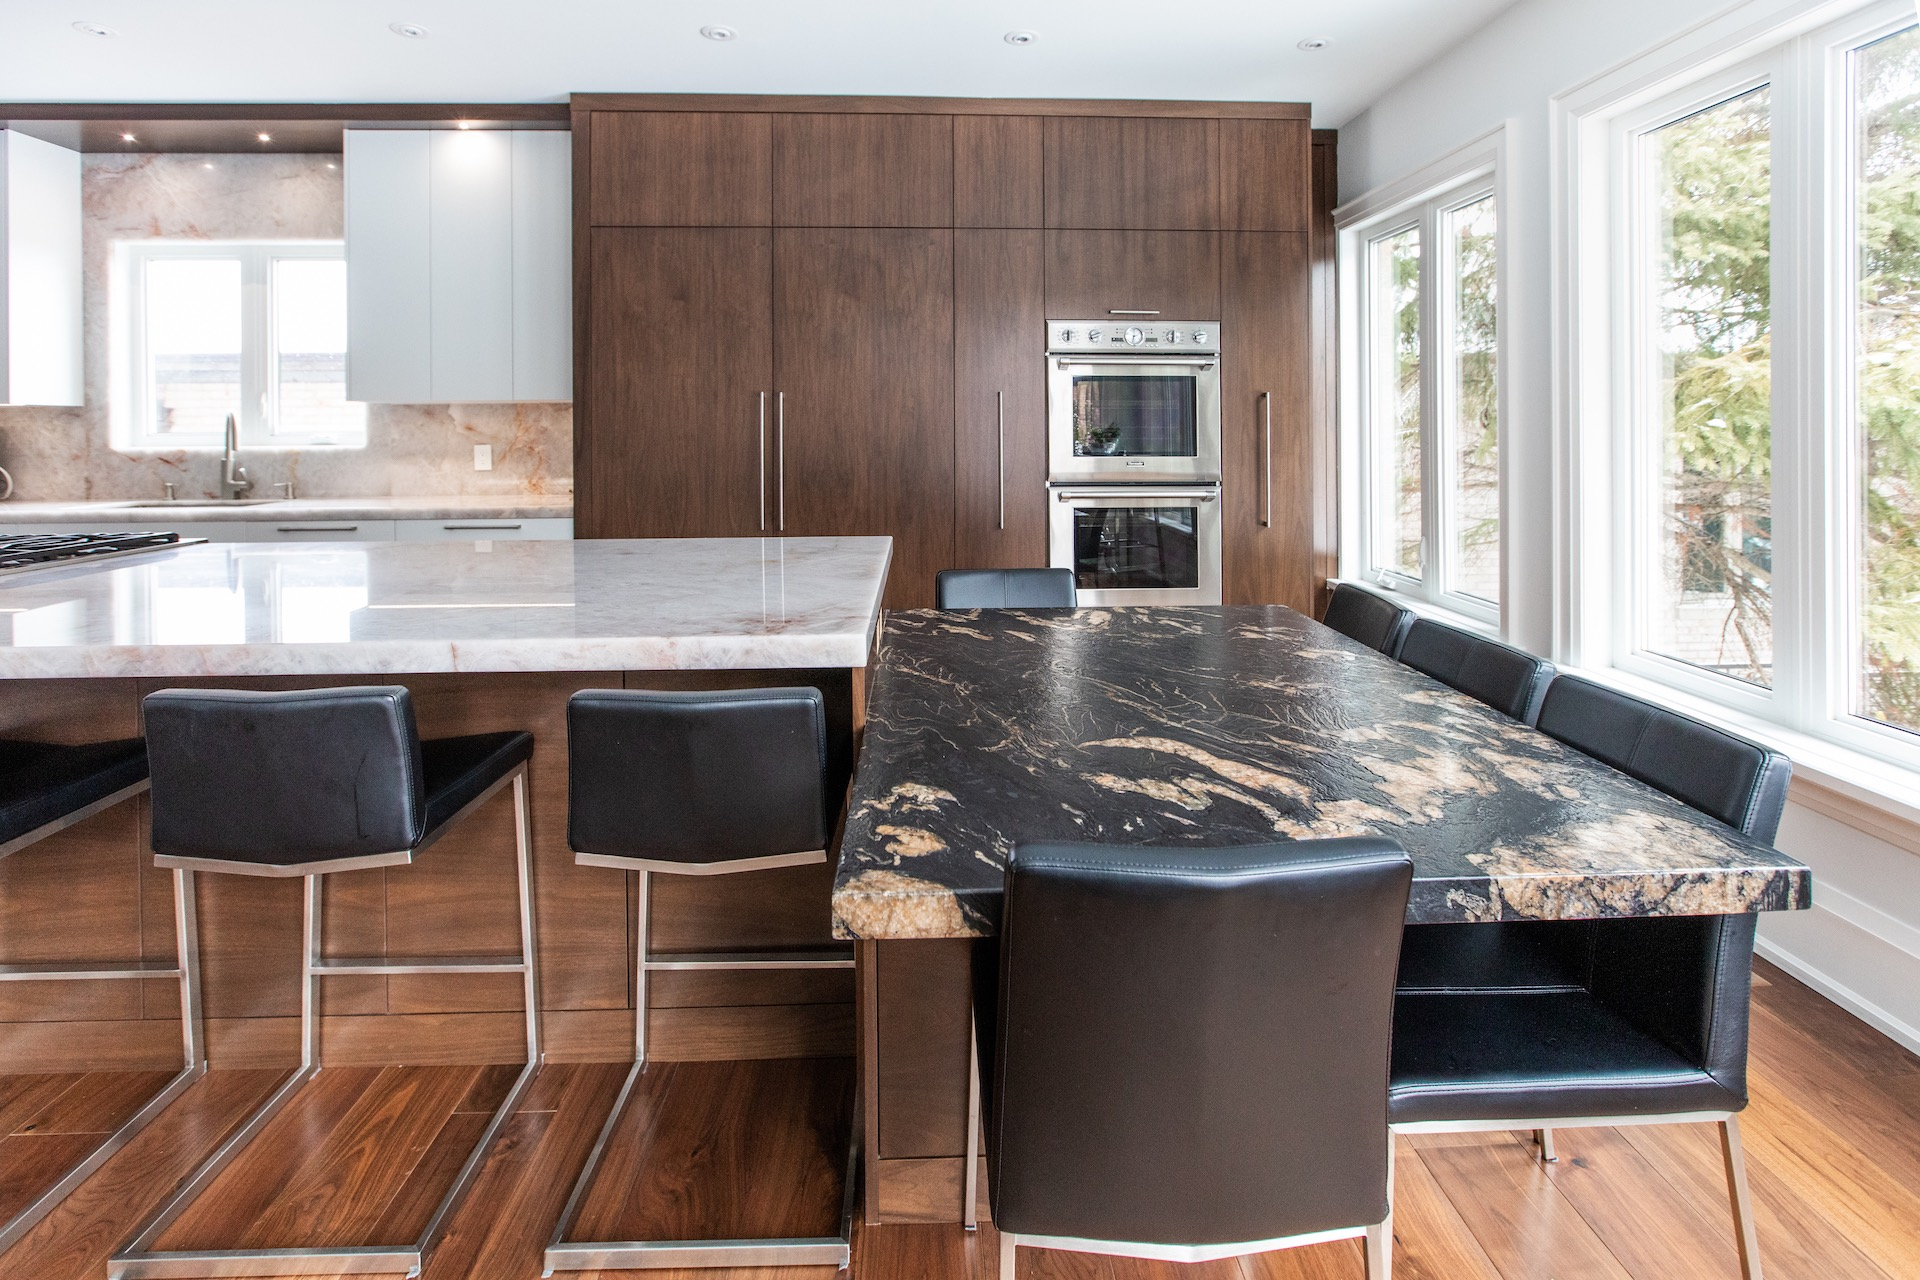 Wood kitchen with marble and black bar stools